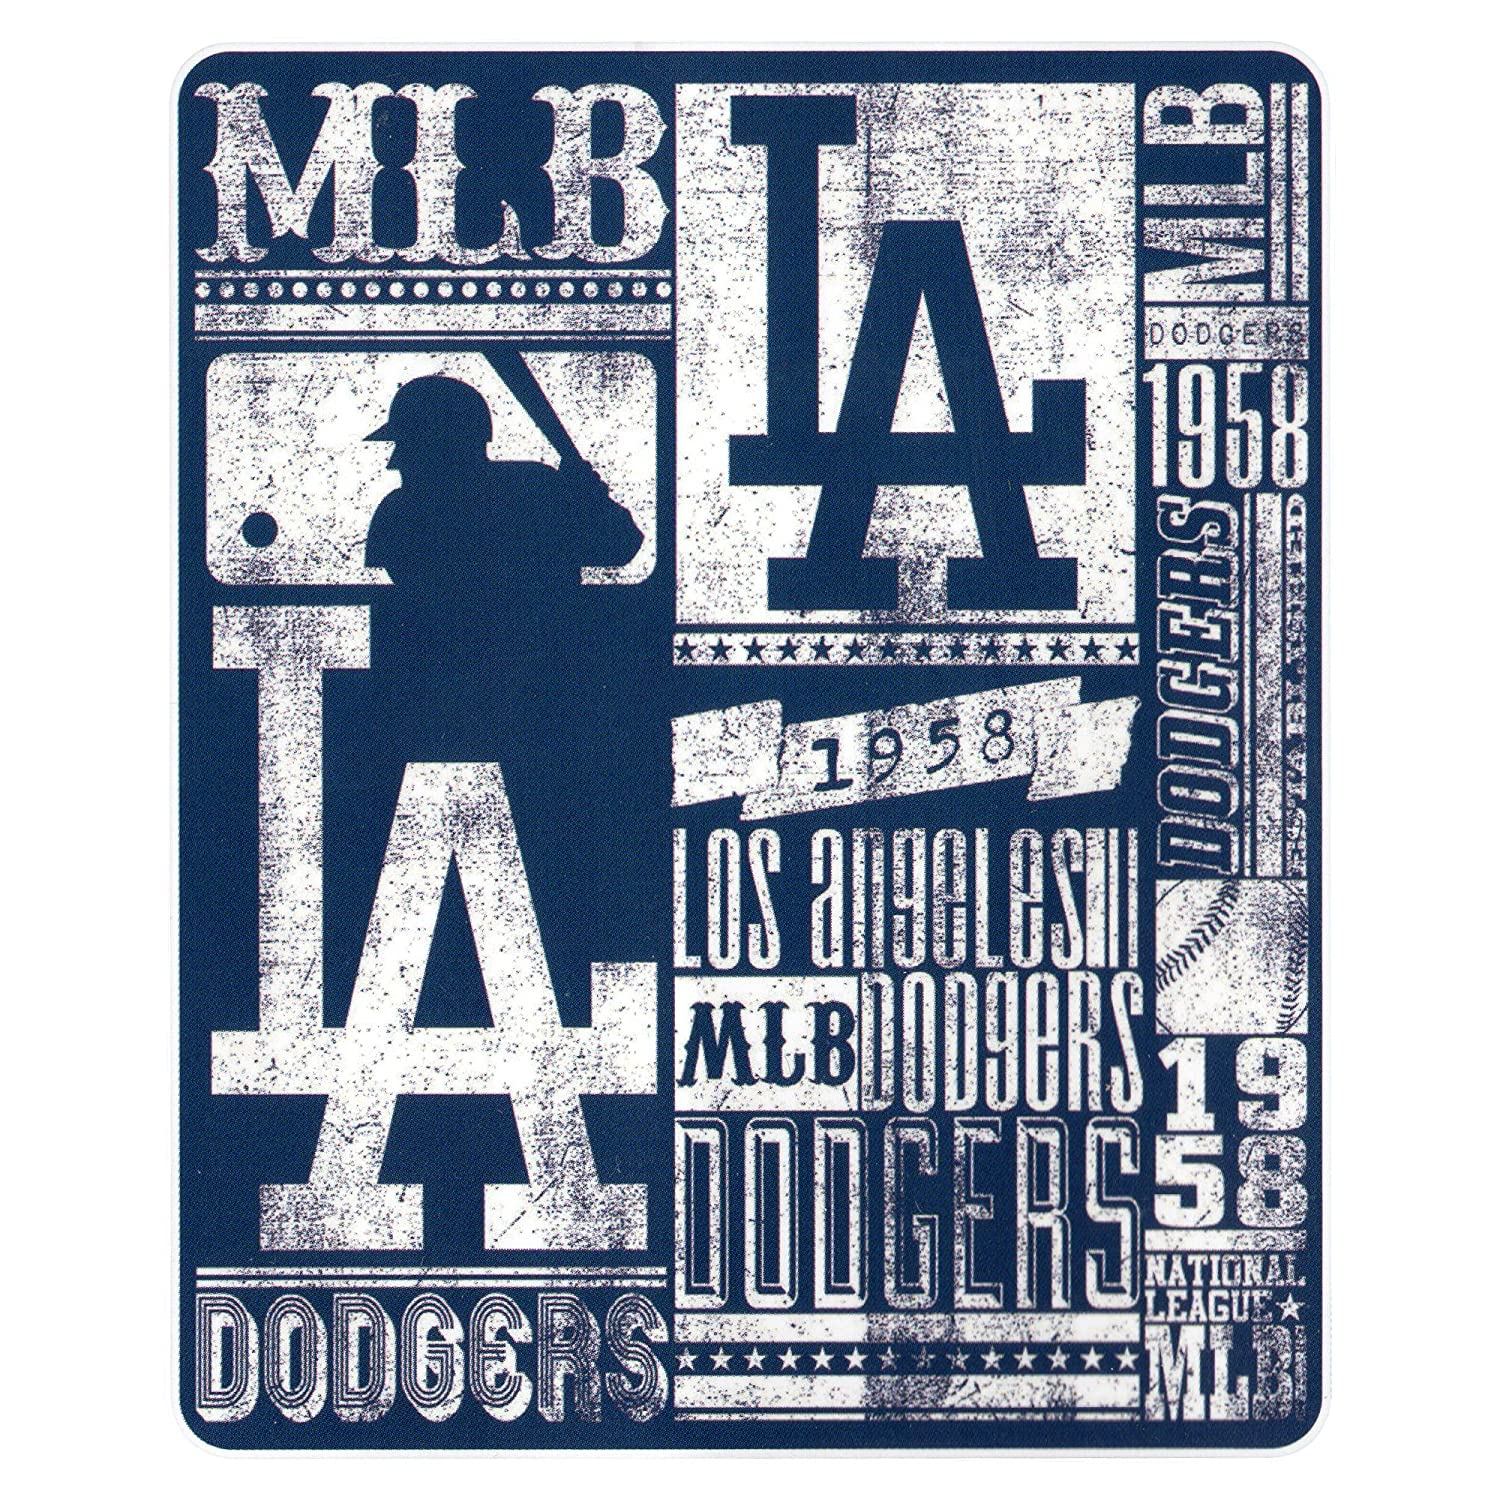 Los Angeles Dodgers 50x60 Fleece Blanket - Strength Design